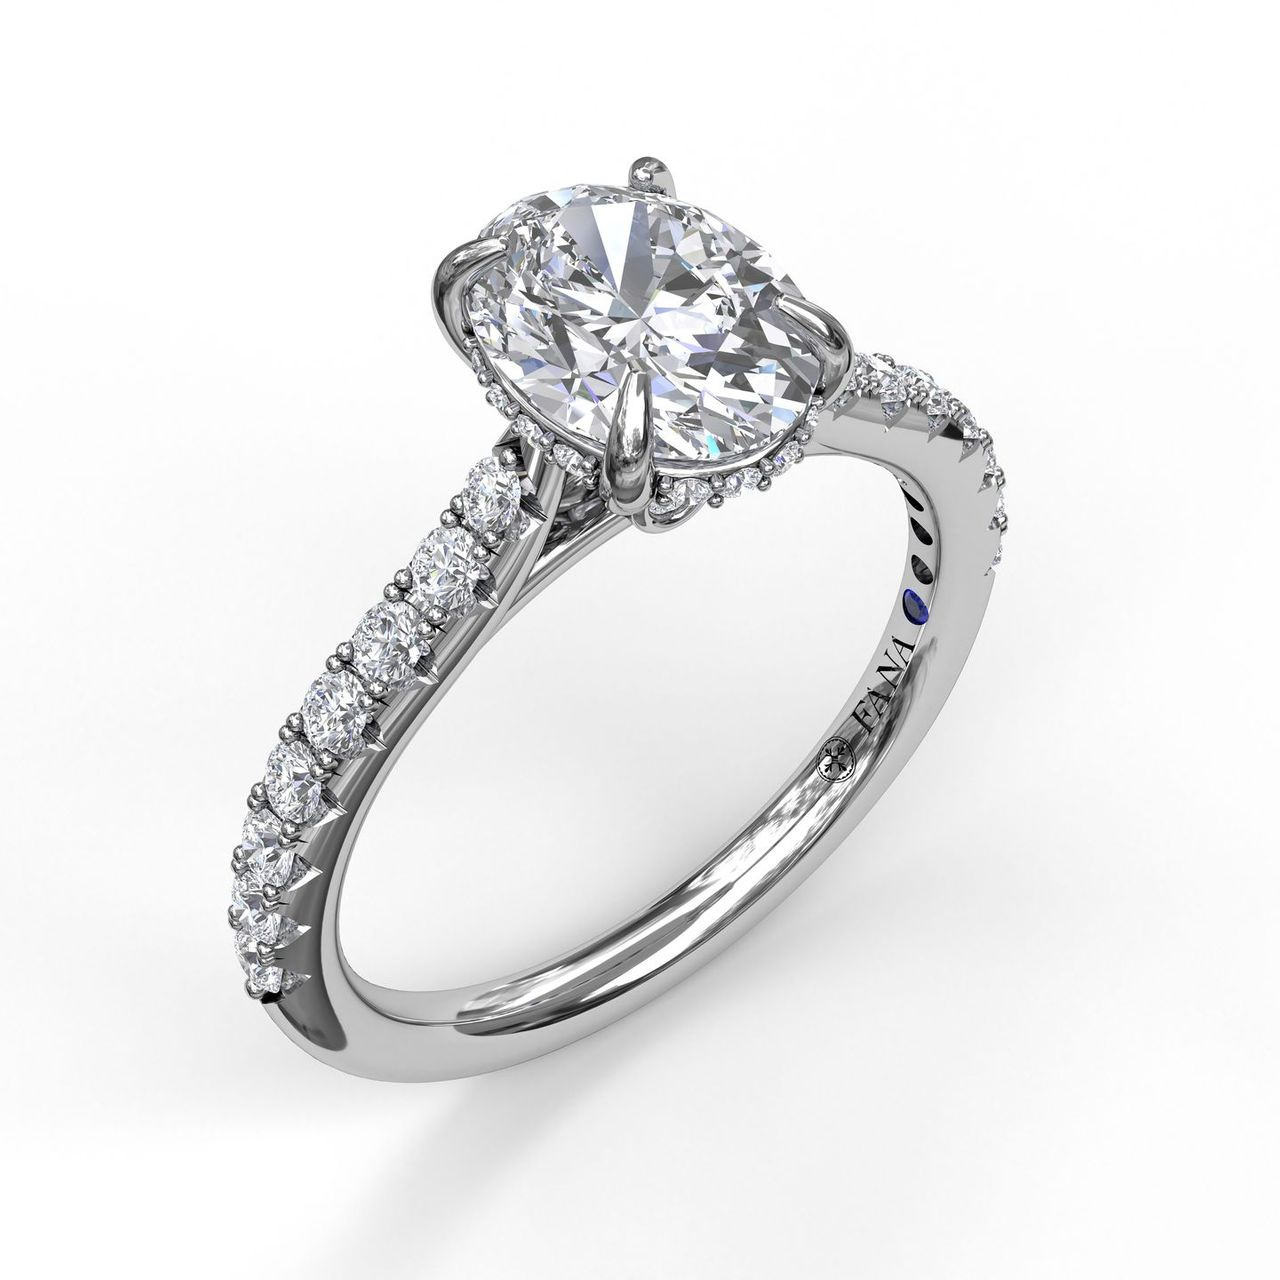 Classic Oval Cut Engagement Ring with a Subtle Diamond Splash